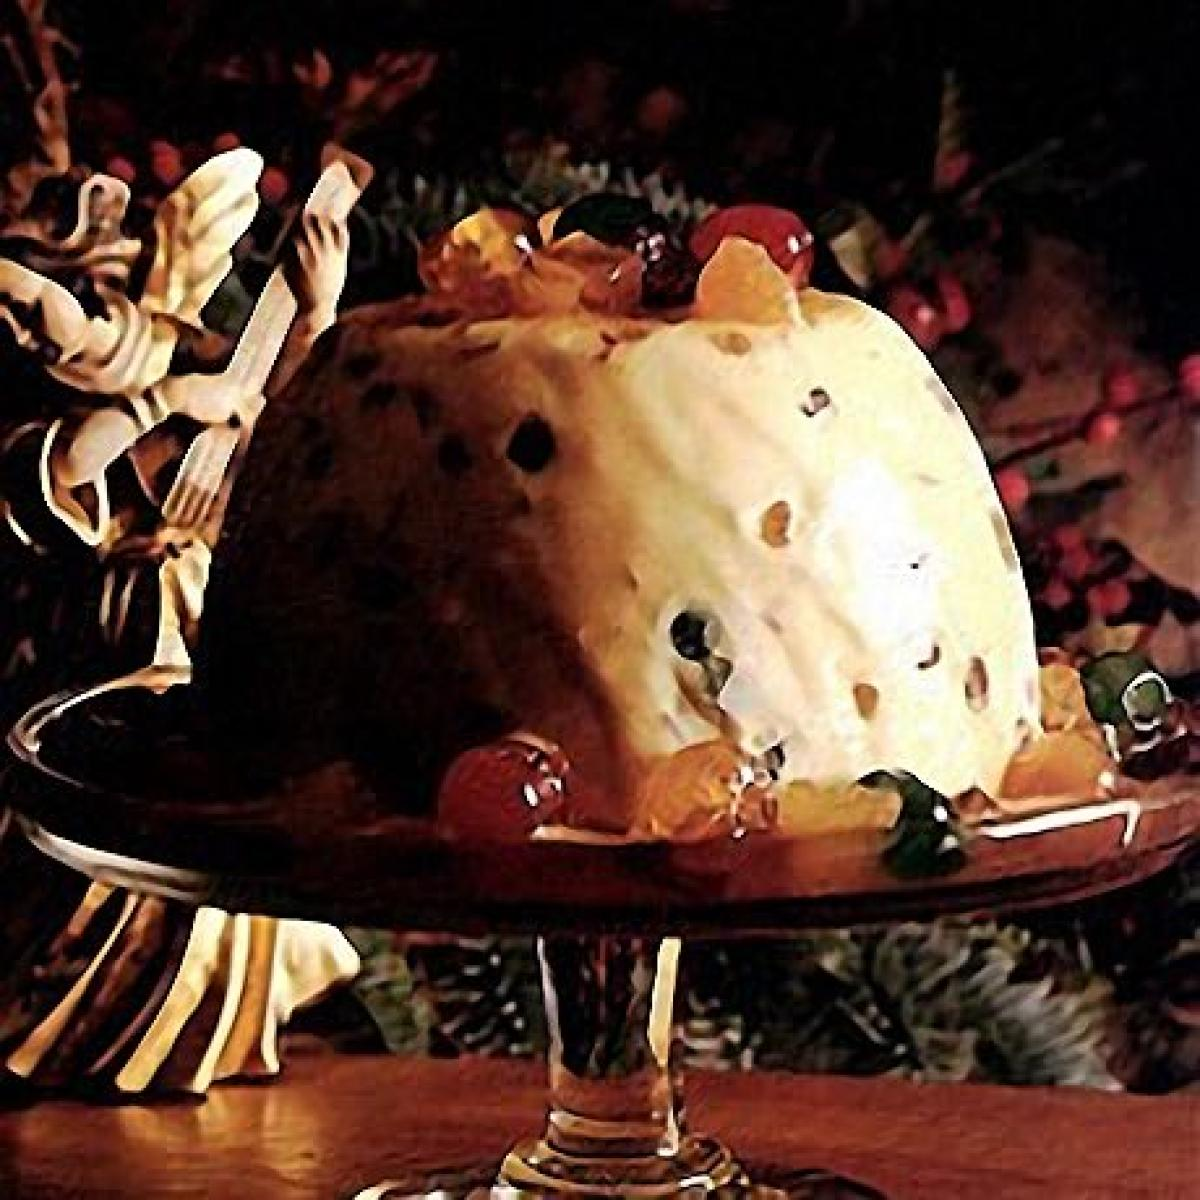 A picture of Delia's Iced Christmas Pudding with Glace Fruits recipe